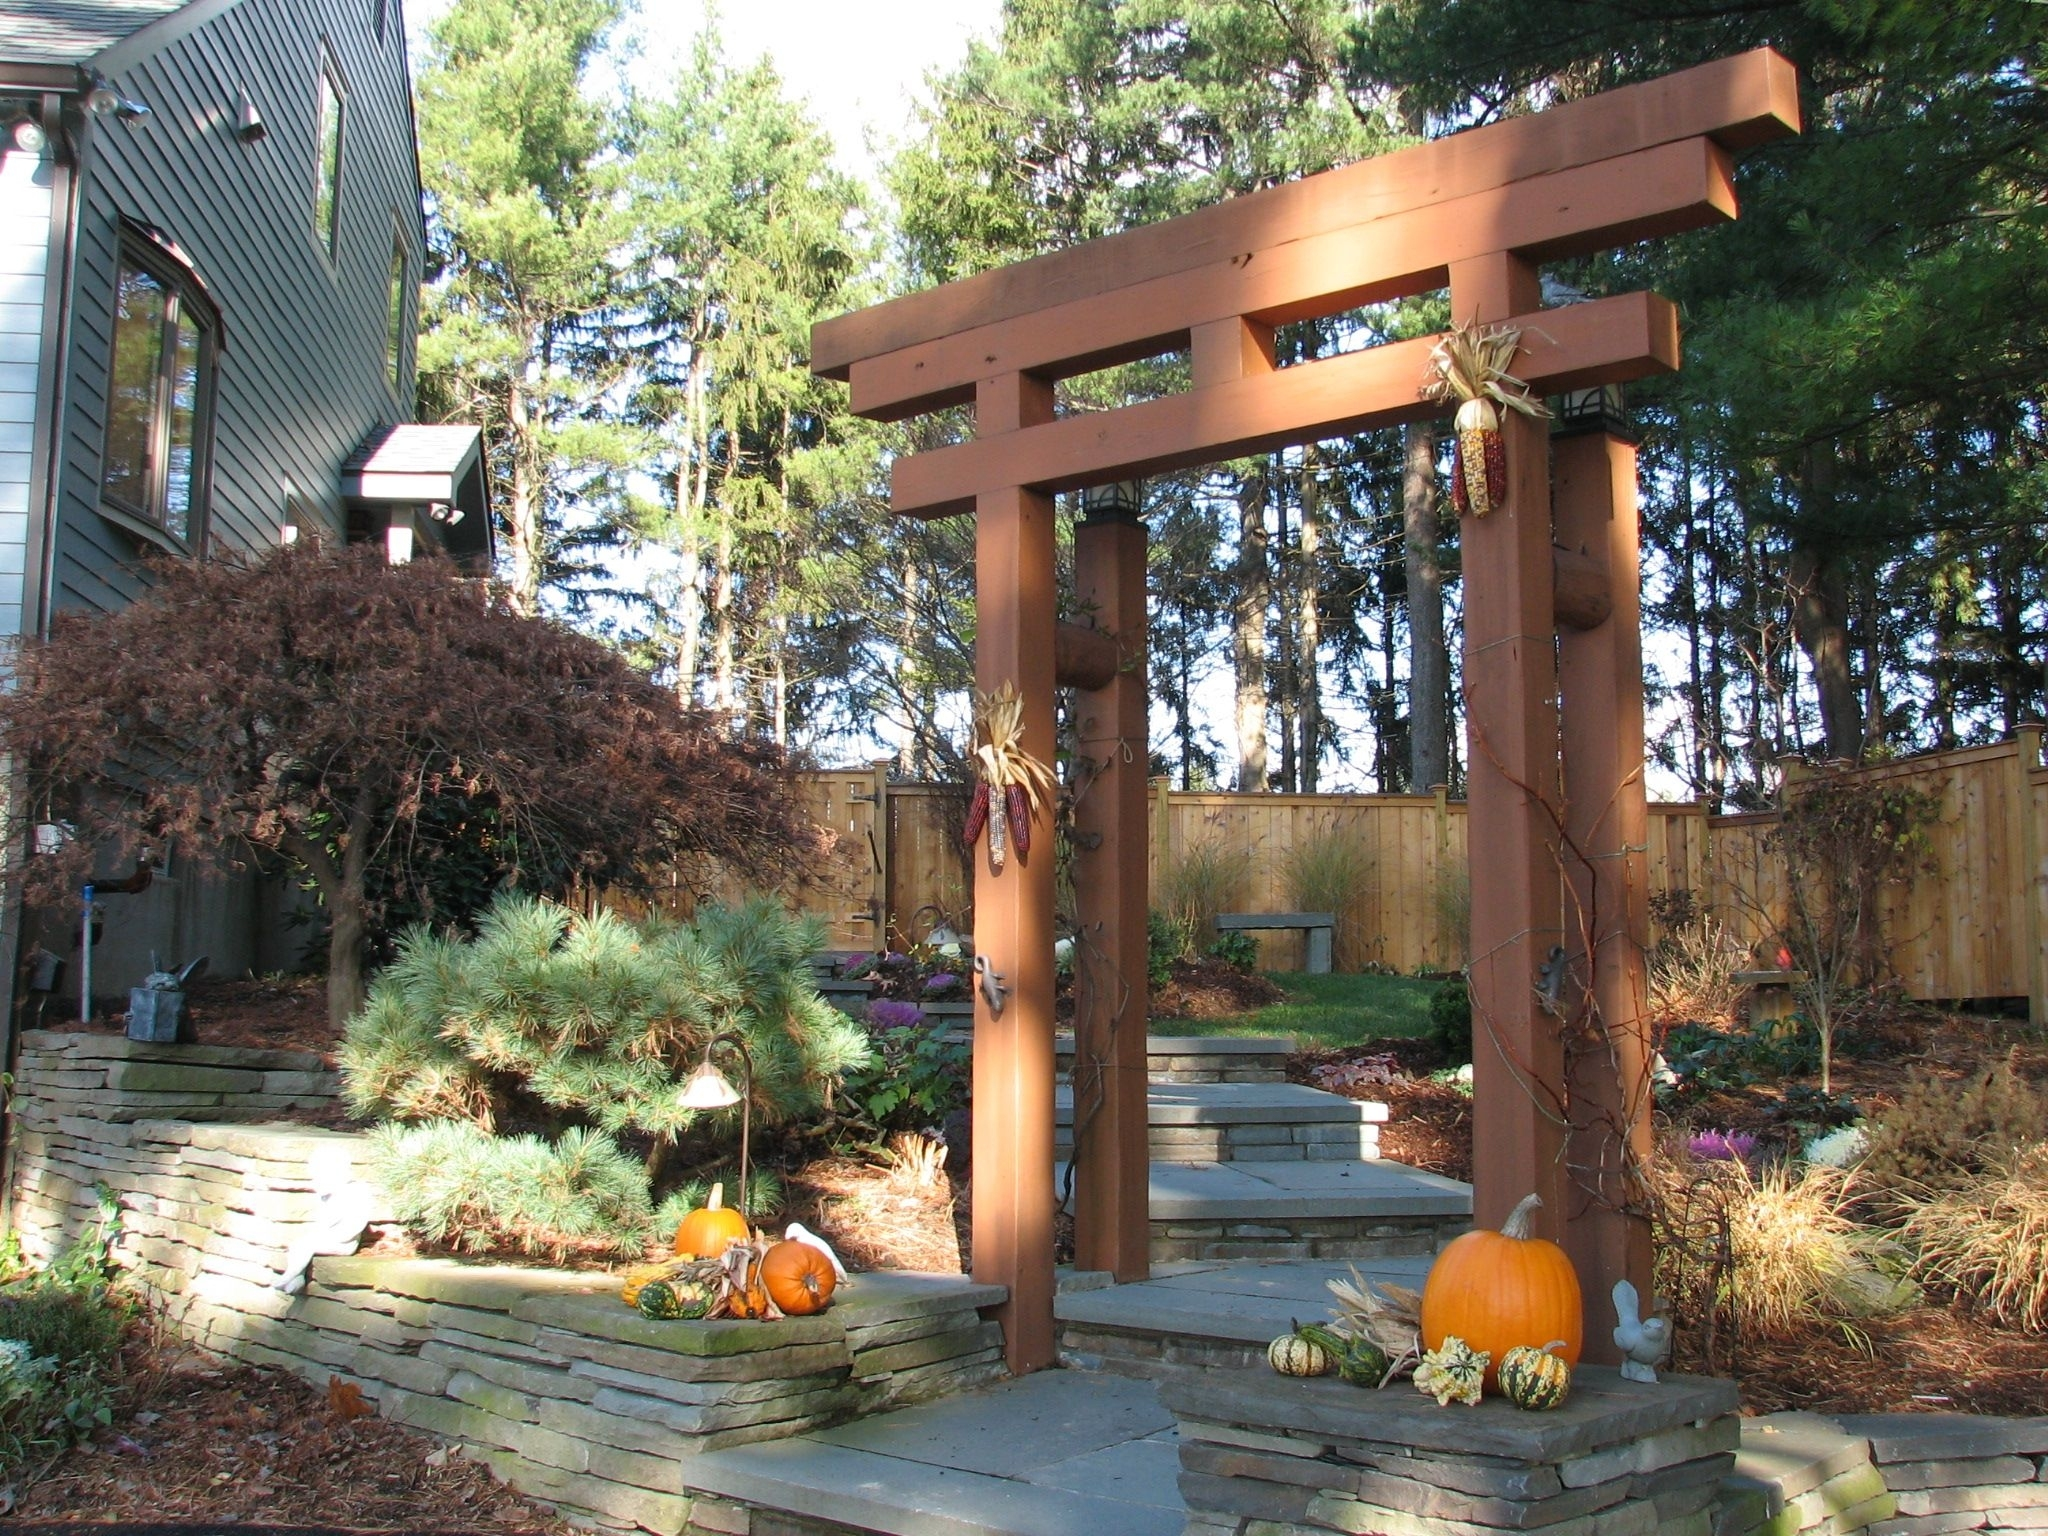 Japanese Arbor Idea - Blue Stone Walkway With Japanese Garden throughout Zen Garden Design With Shinto Gate